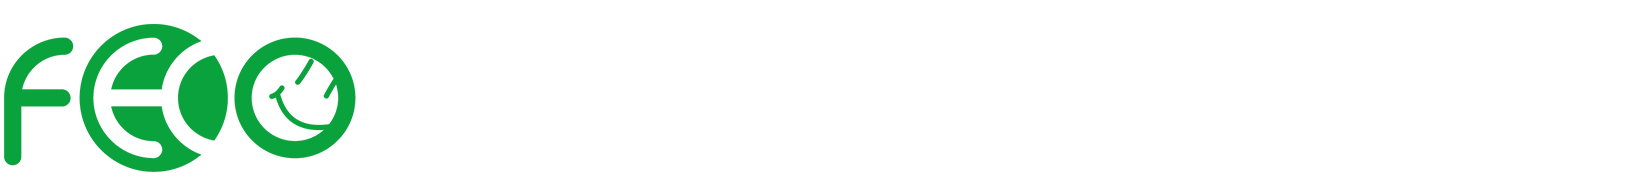 Fukunaga Engineering Co., Ltd.